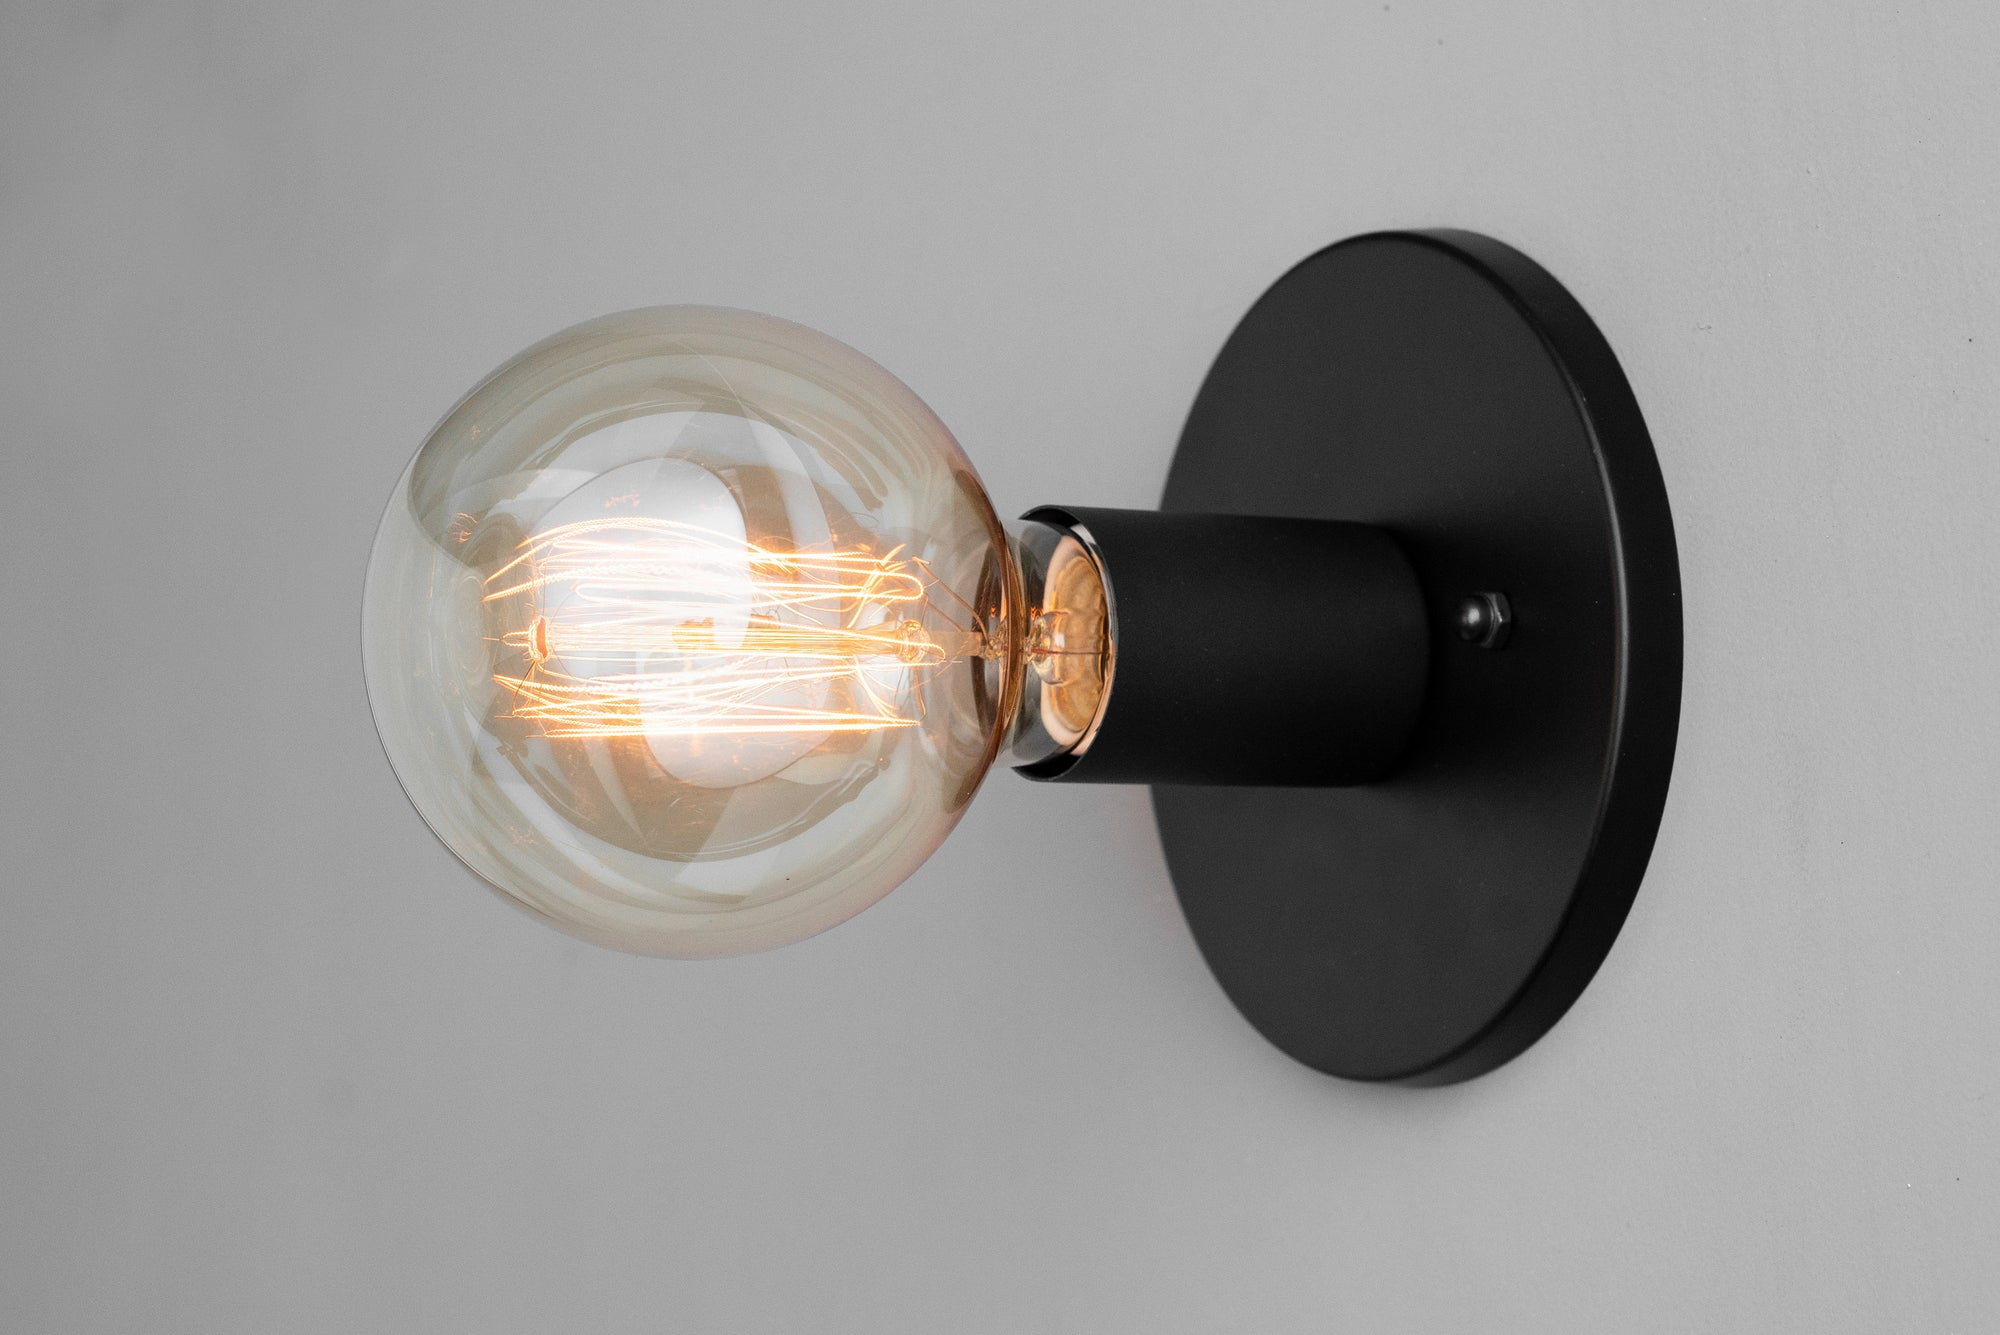 Picture of: Ceiling Light Model No 2057 Peared Creation